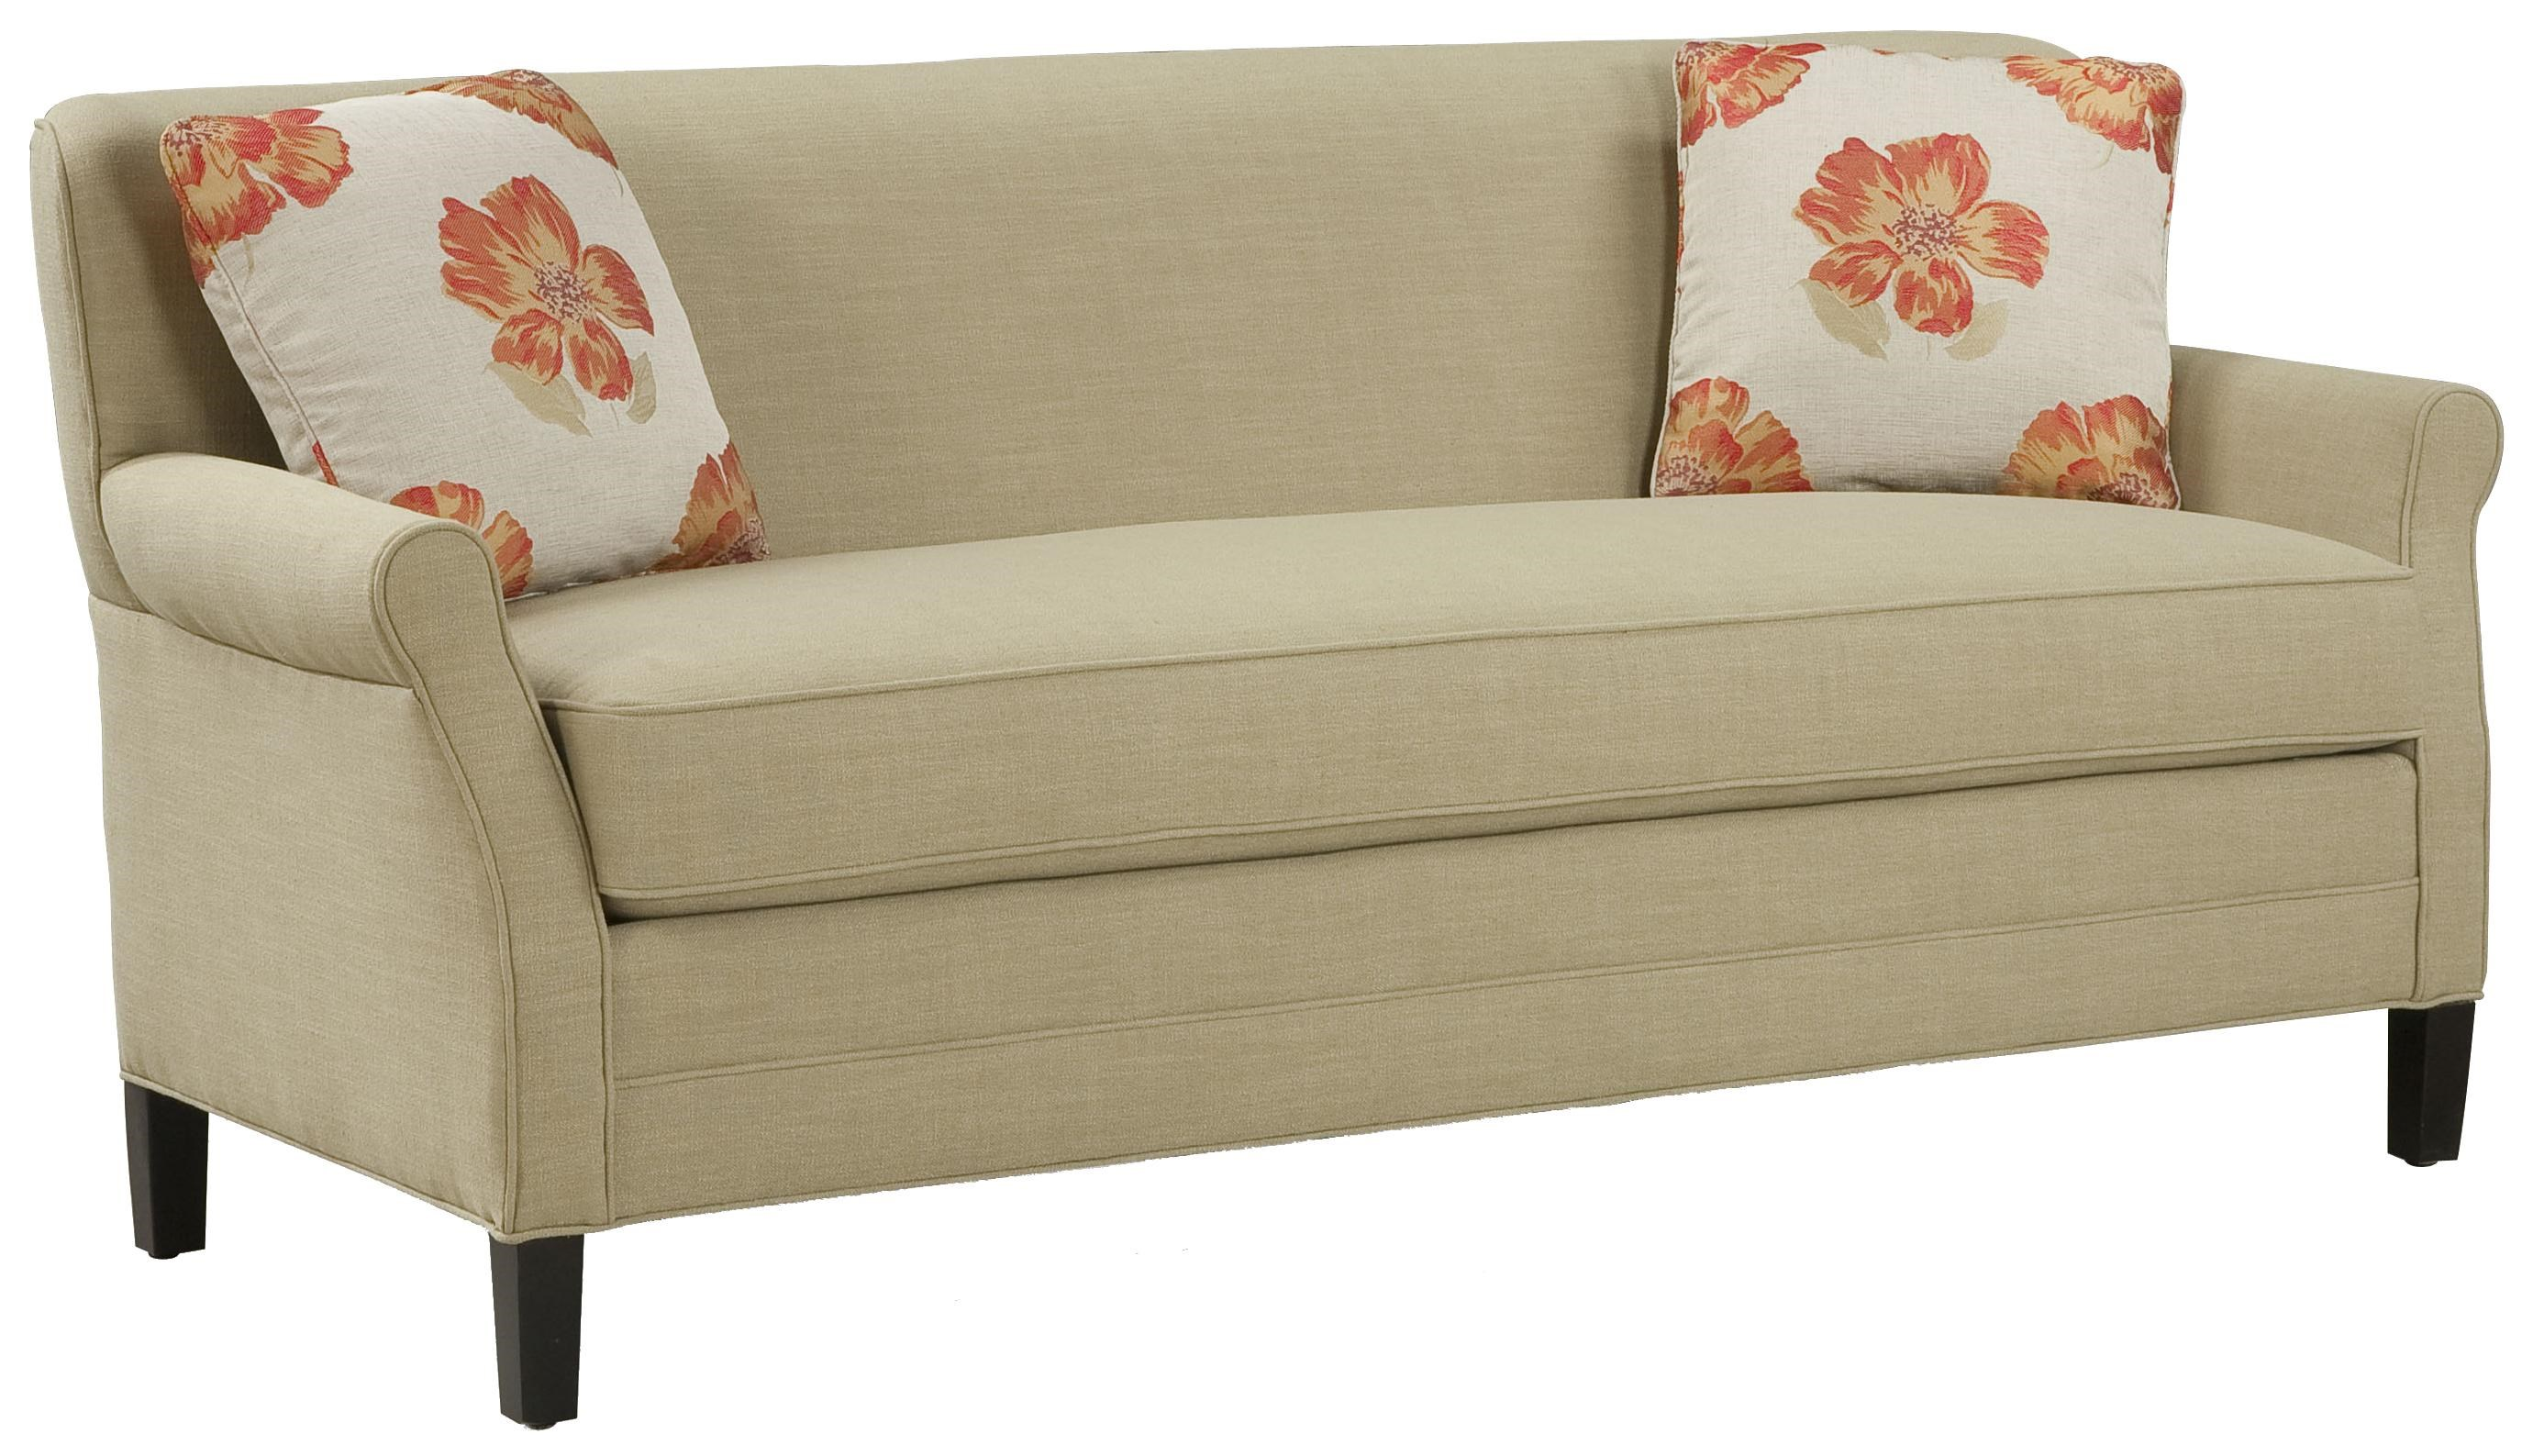 Fairfield Sofa Accents Simple And Elegant Un Cluttered Sofa With Single  Seat Cushion   Belfort Furniture   Sofas